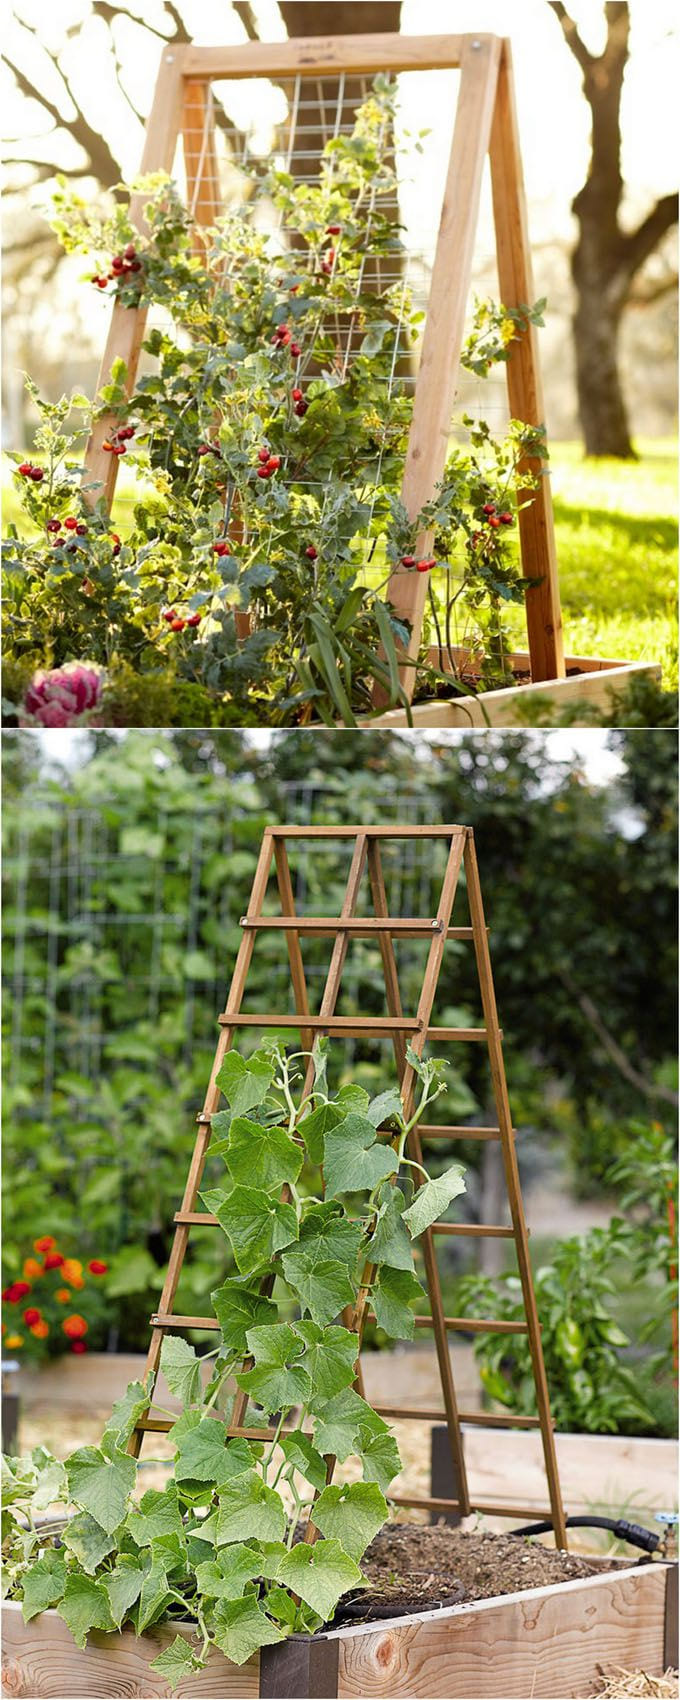 Simphome.com easy diy garden trellis ideas vertical growing structures a throughout years 2021 2022 2020